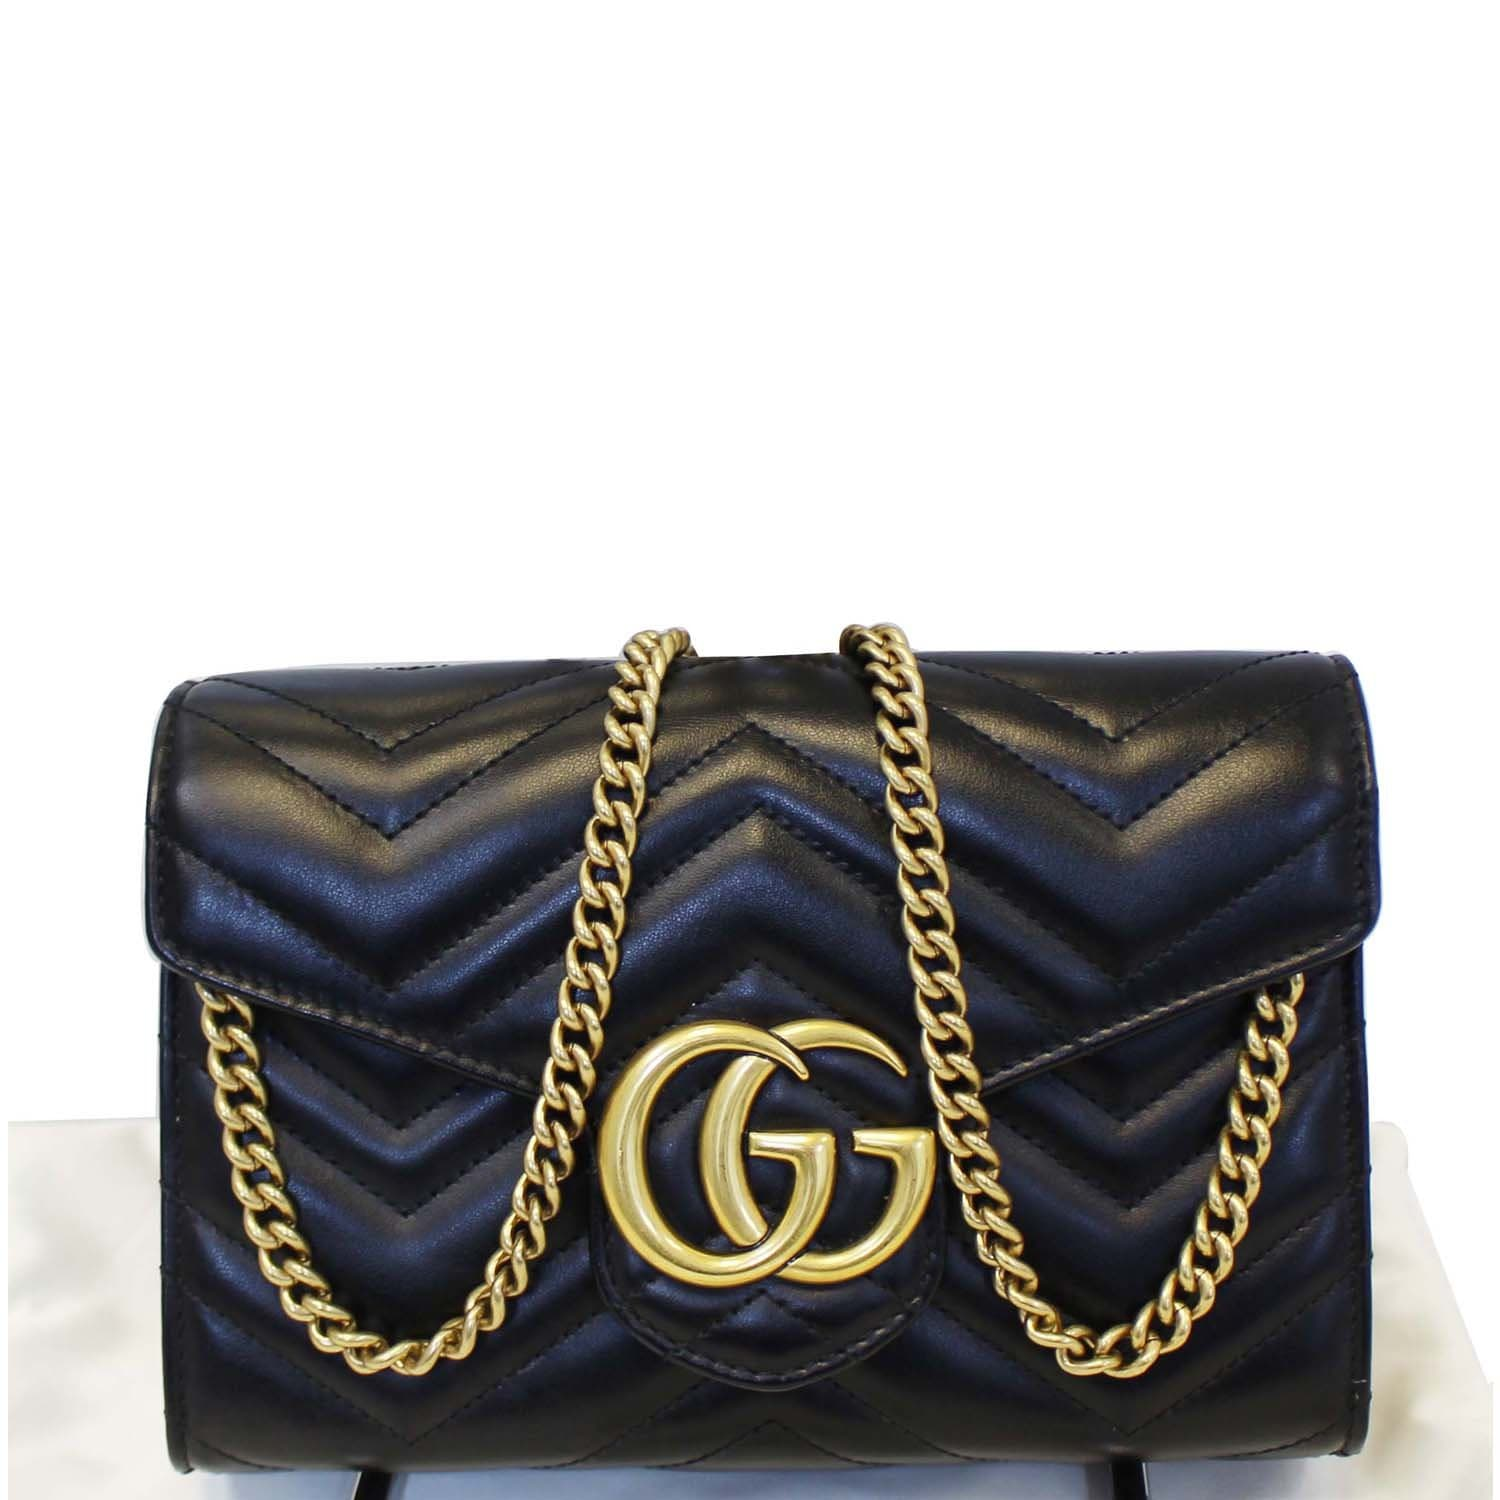 953482a9c7a1 GUCCI GG Marmont Matelasse Black Leather Super Mini Crossbody Bag-US